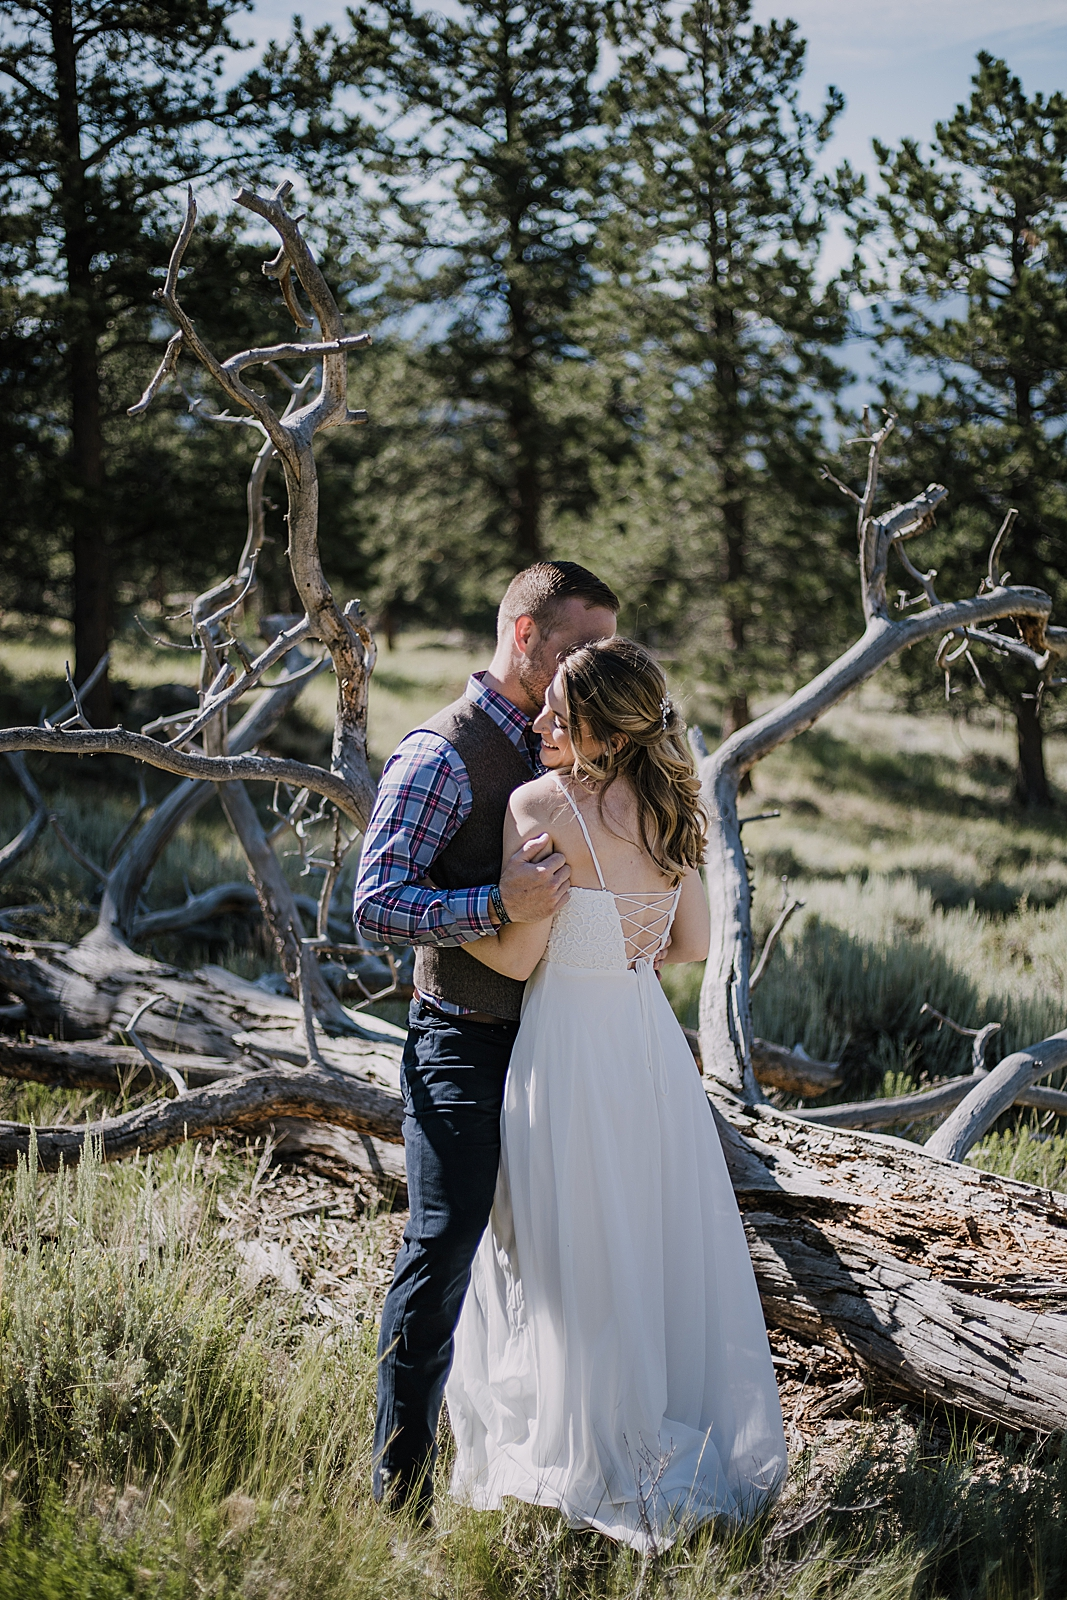 bride and groom, RMNP elopement ceremony, rocky mountain national park elopement, 3M curves elopement, self solemnizing, self solemnization, long's peak, summer hiking elopement, estes park elopement